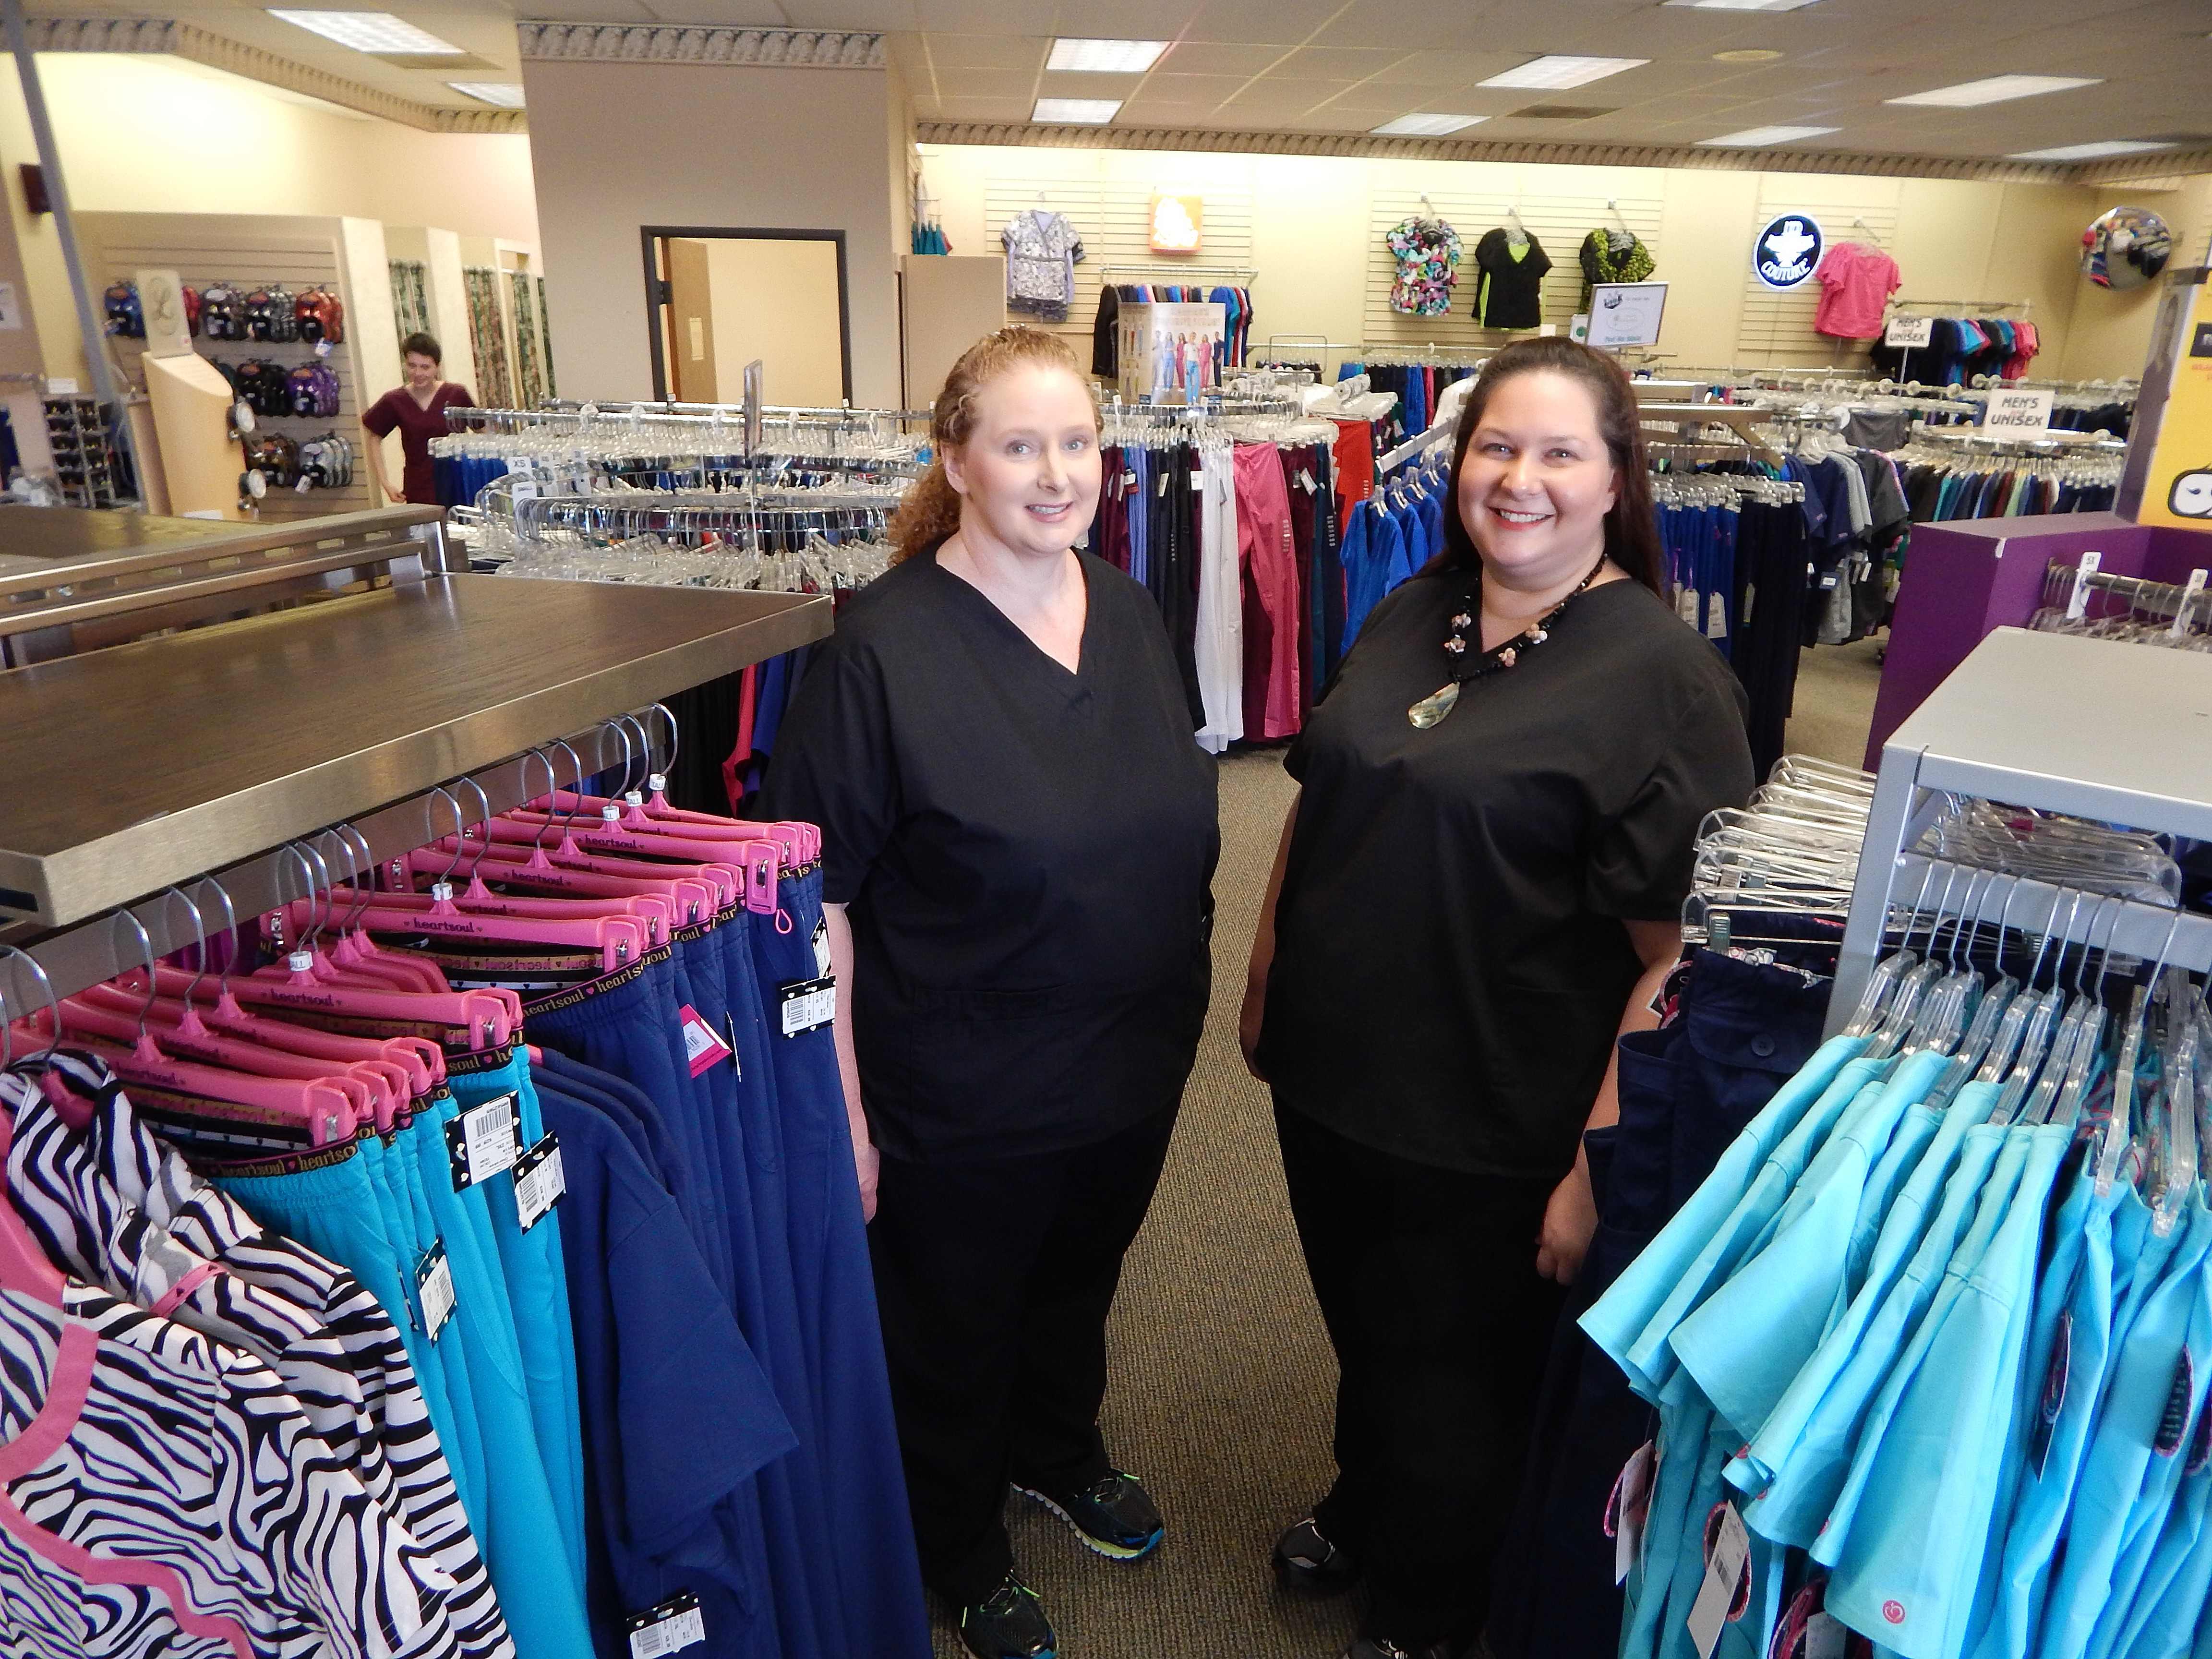 Uniform Shoppe manager Shari Stallings and sales associate Ericka Branham-Stapp stand ready to serve.